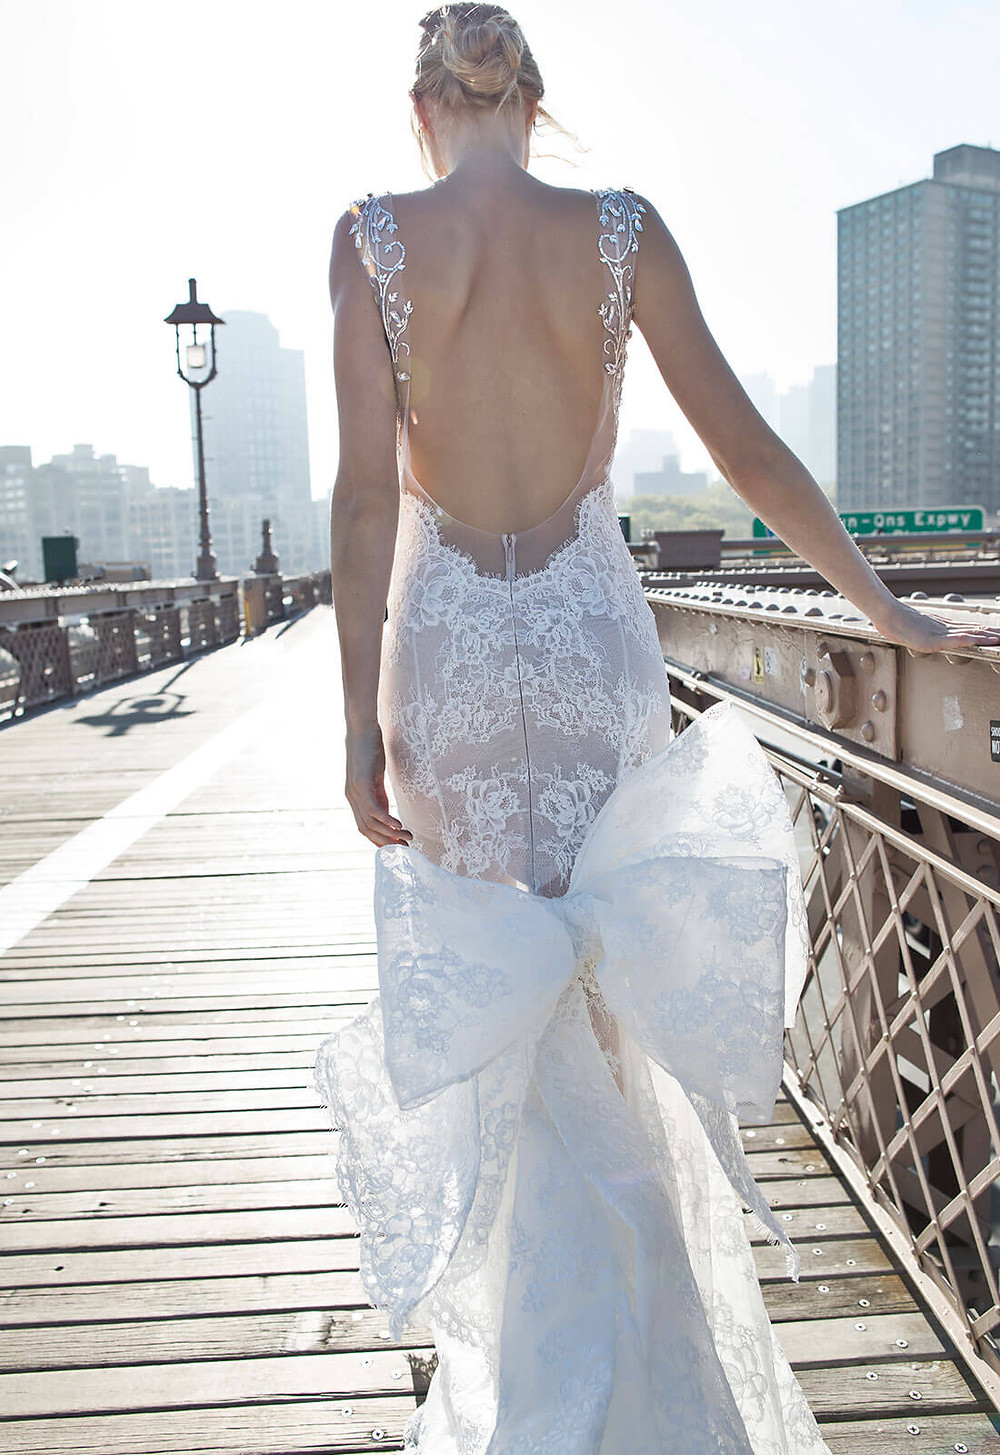 A Pnina Tornai lace mermaid fit and flare wedding dress with a low back and a bow